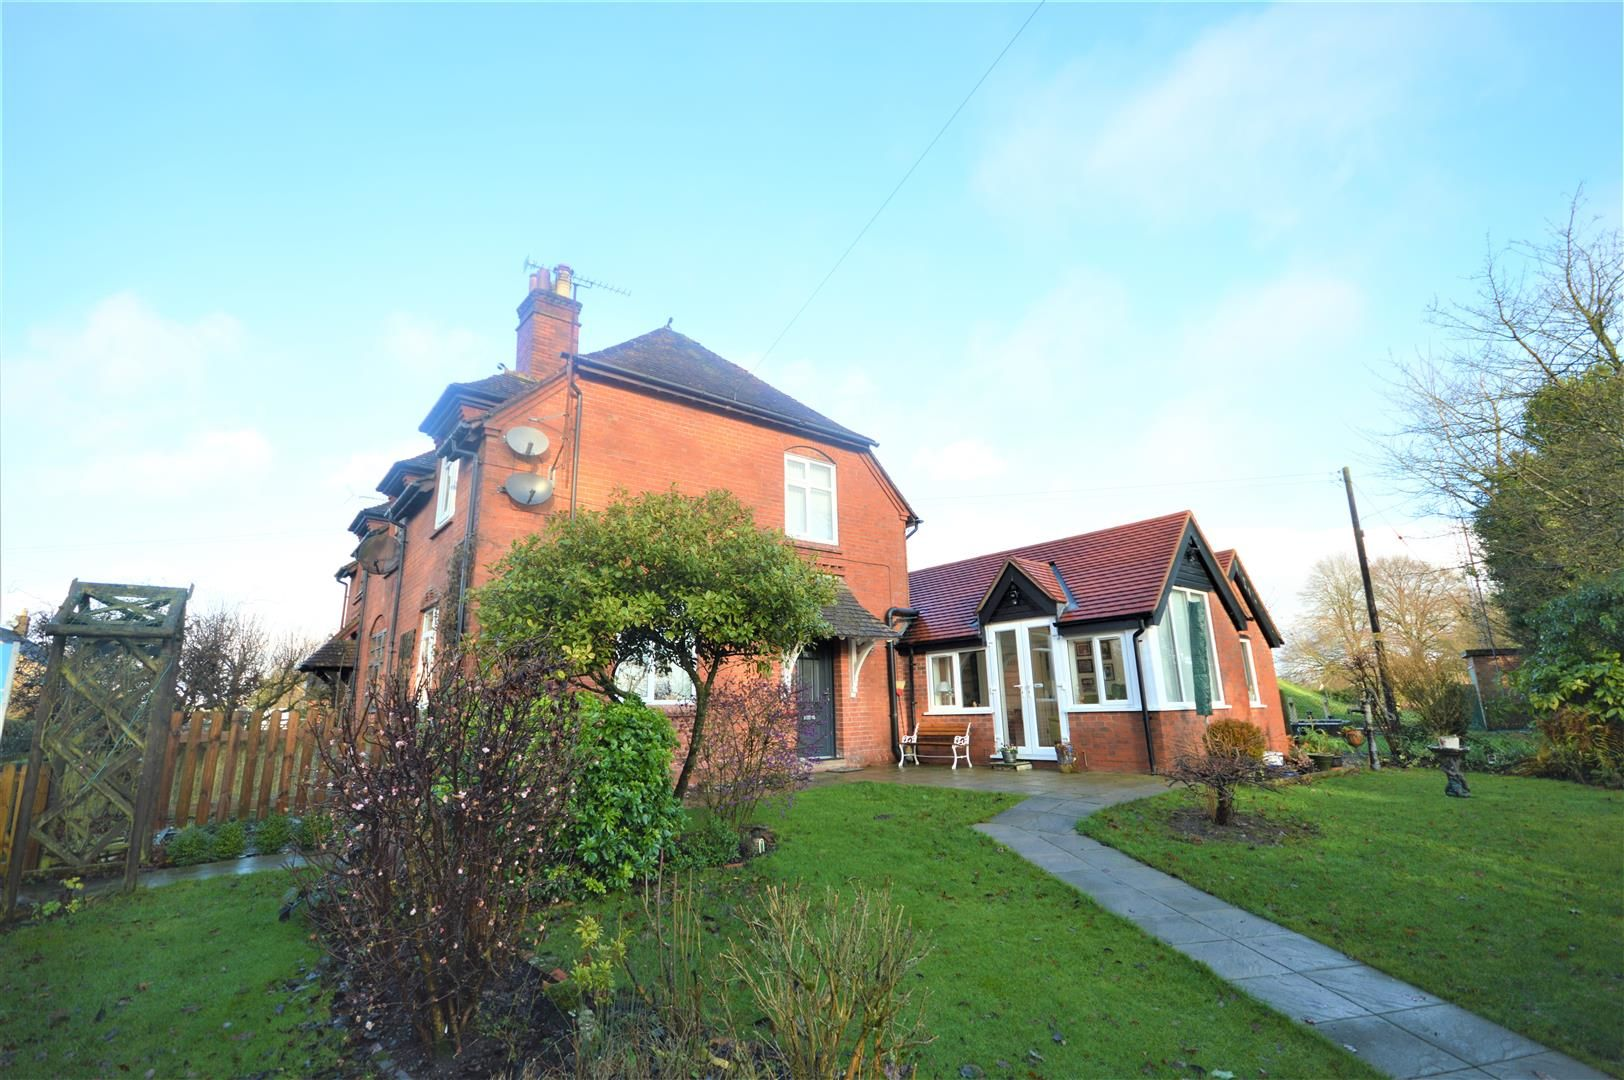 4 bed semi-detached for sale in Leysters  - Property Image 1